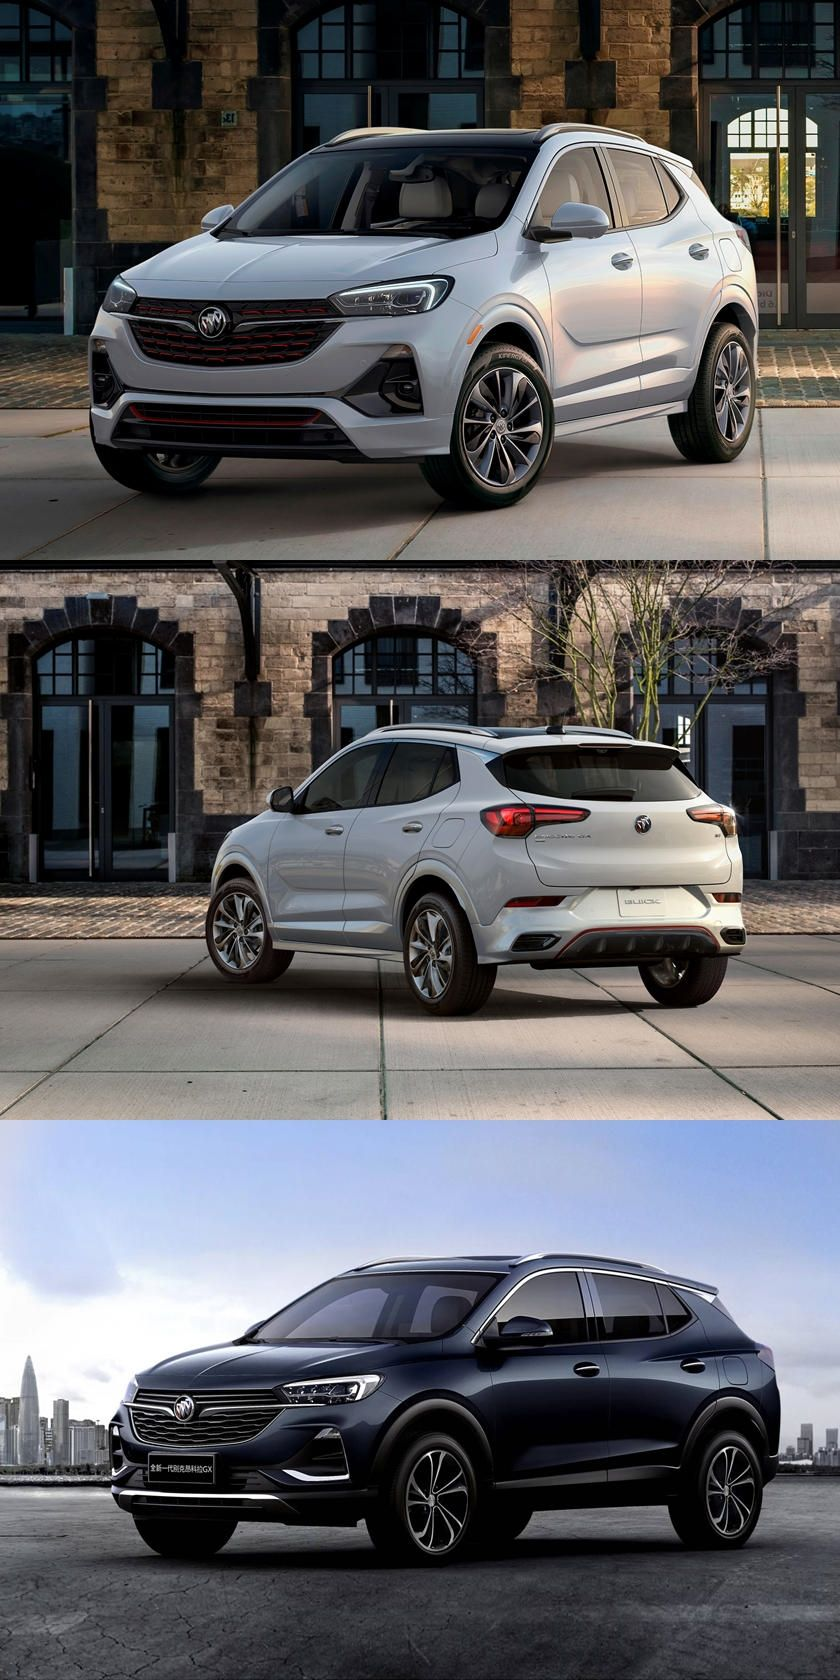 2020 Buick Encore Gx Pricing Confirmed In 2020 Buick Encore Buick Buick Envision